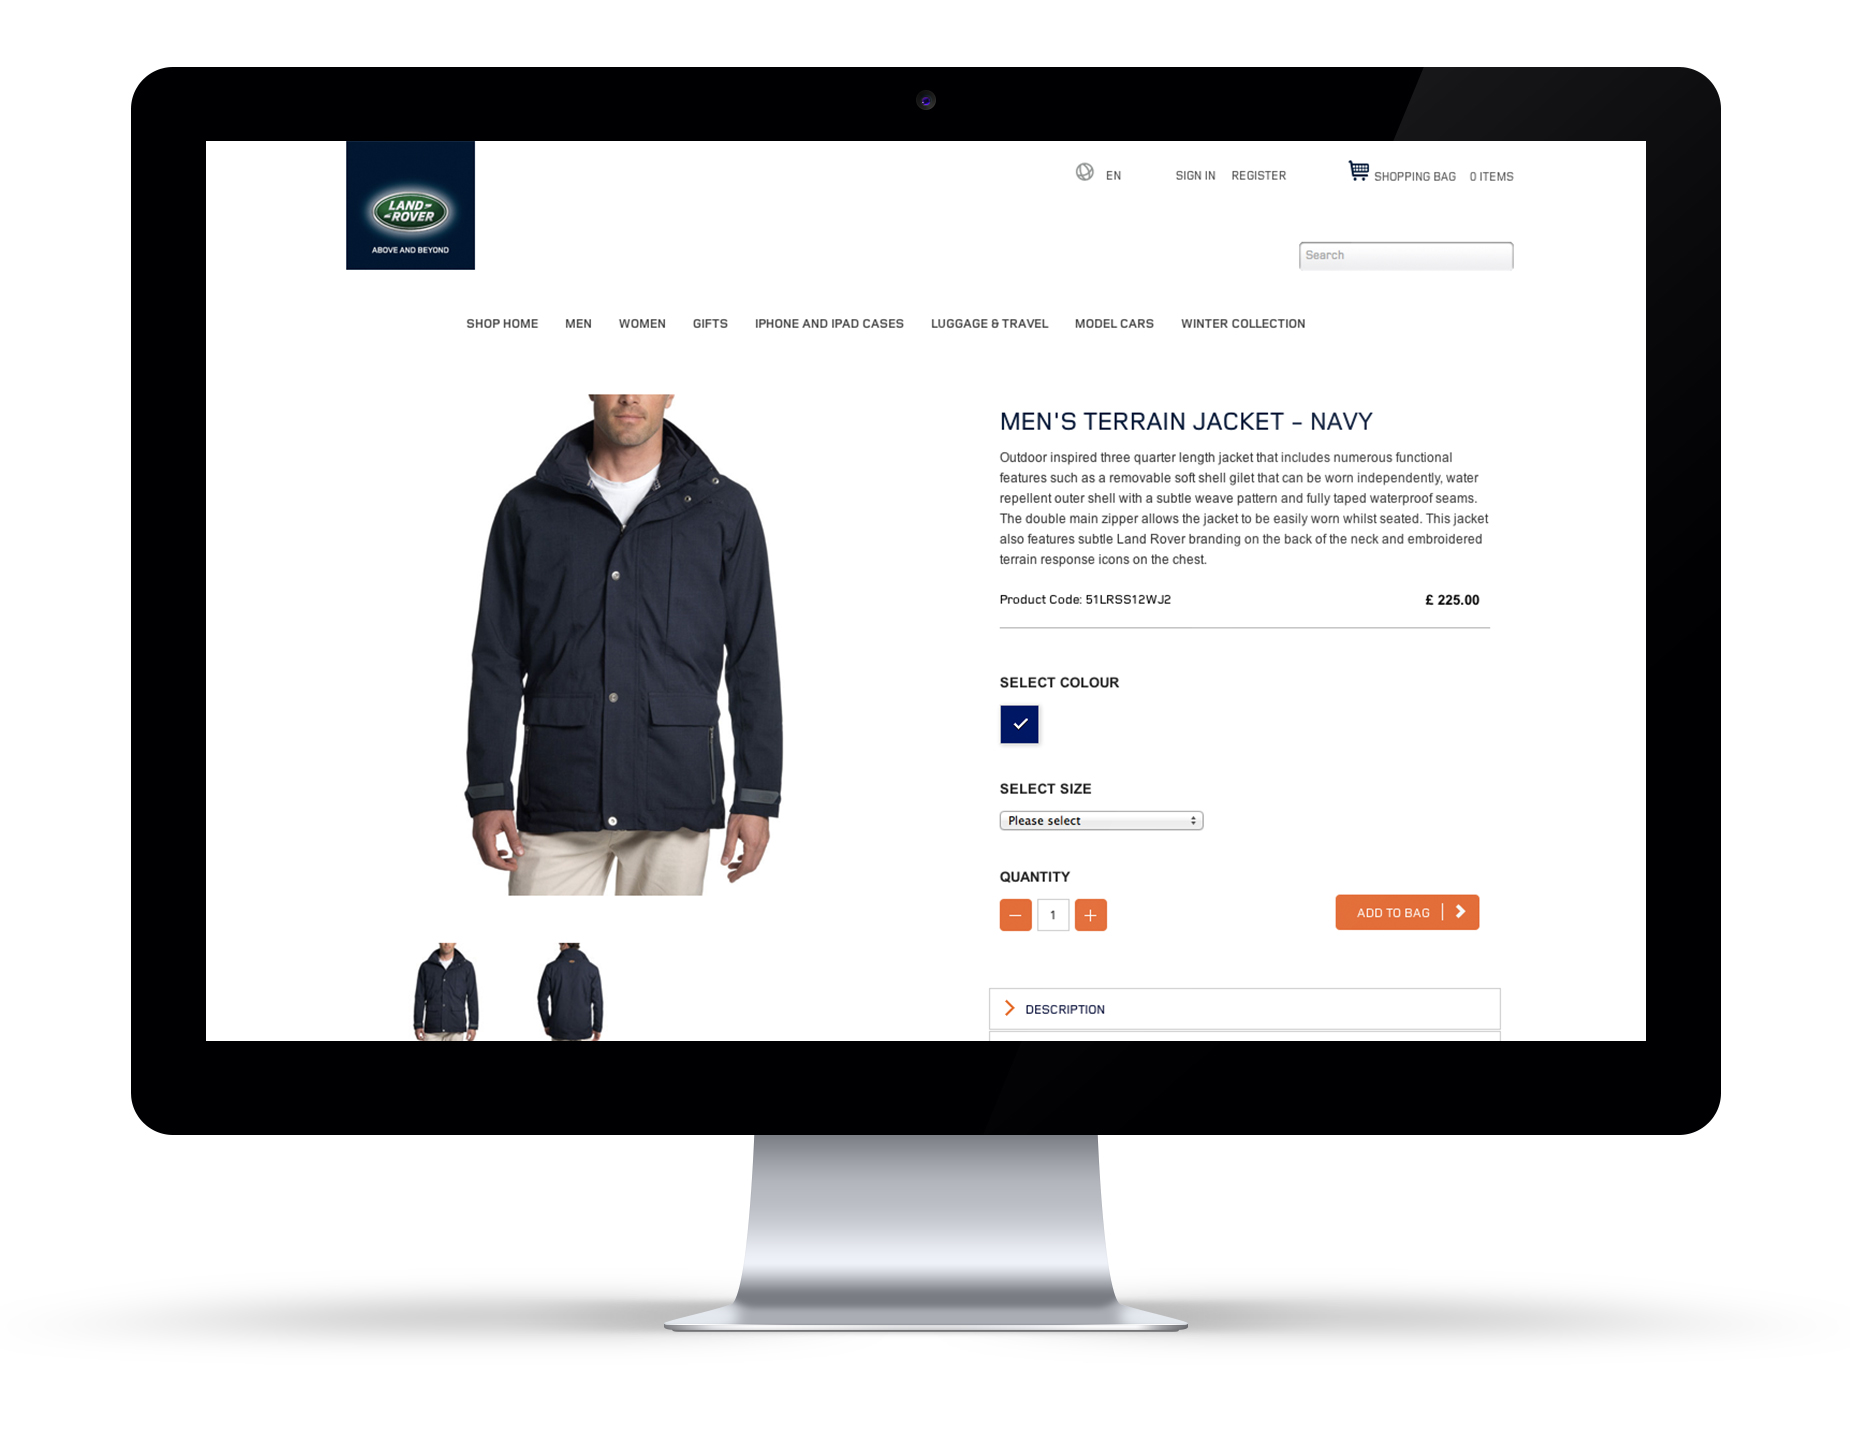 Product detail page.